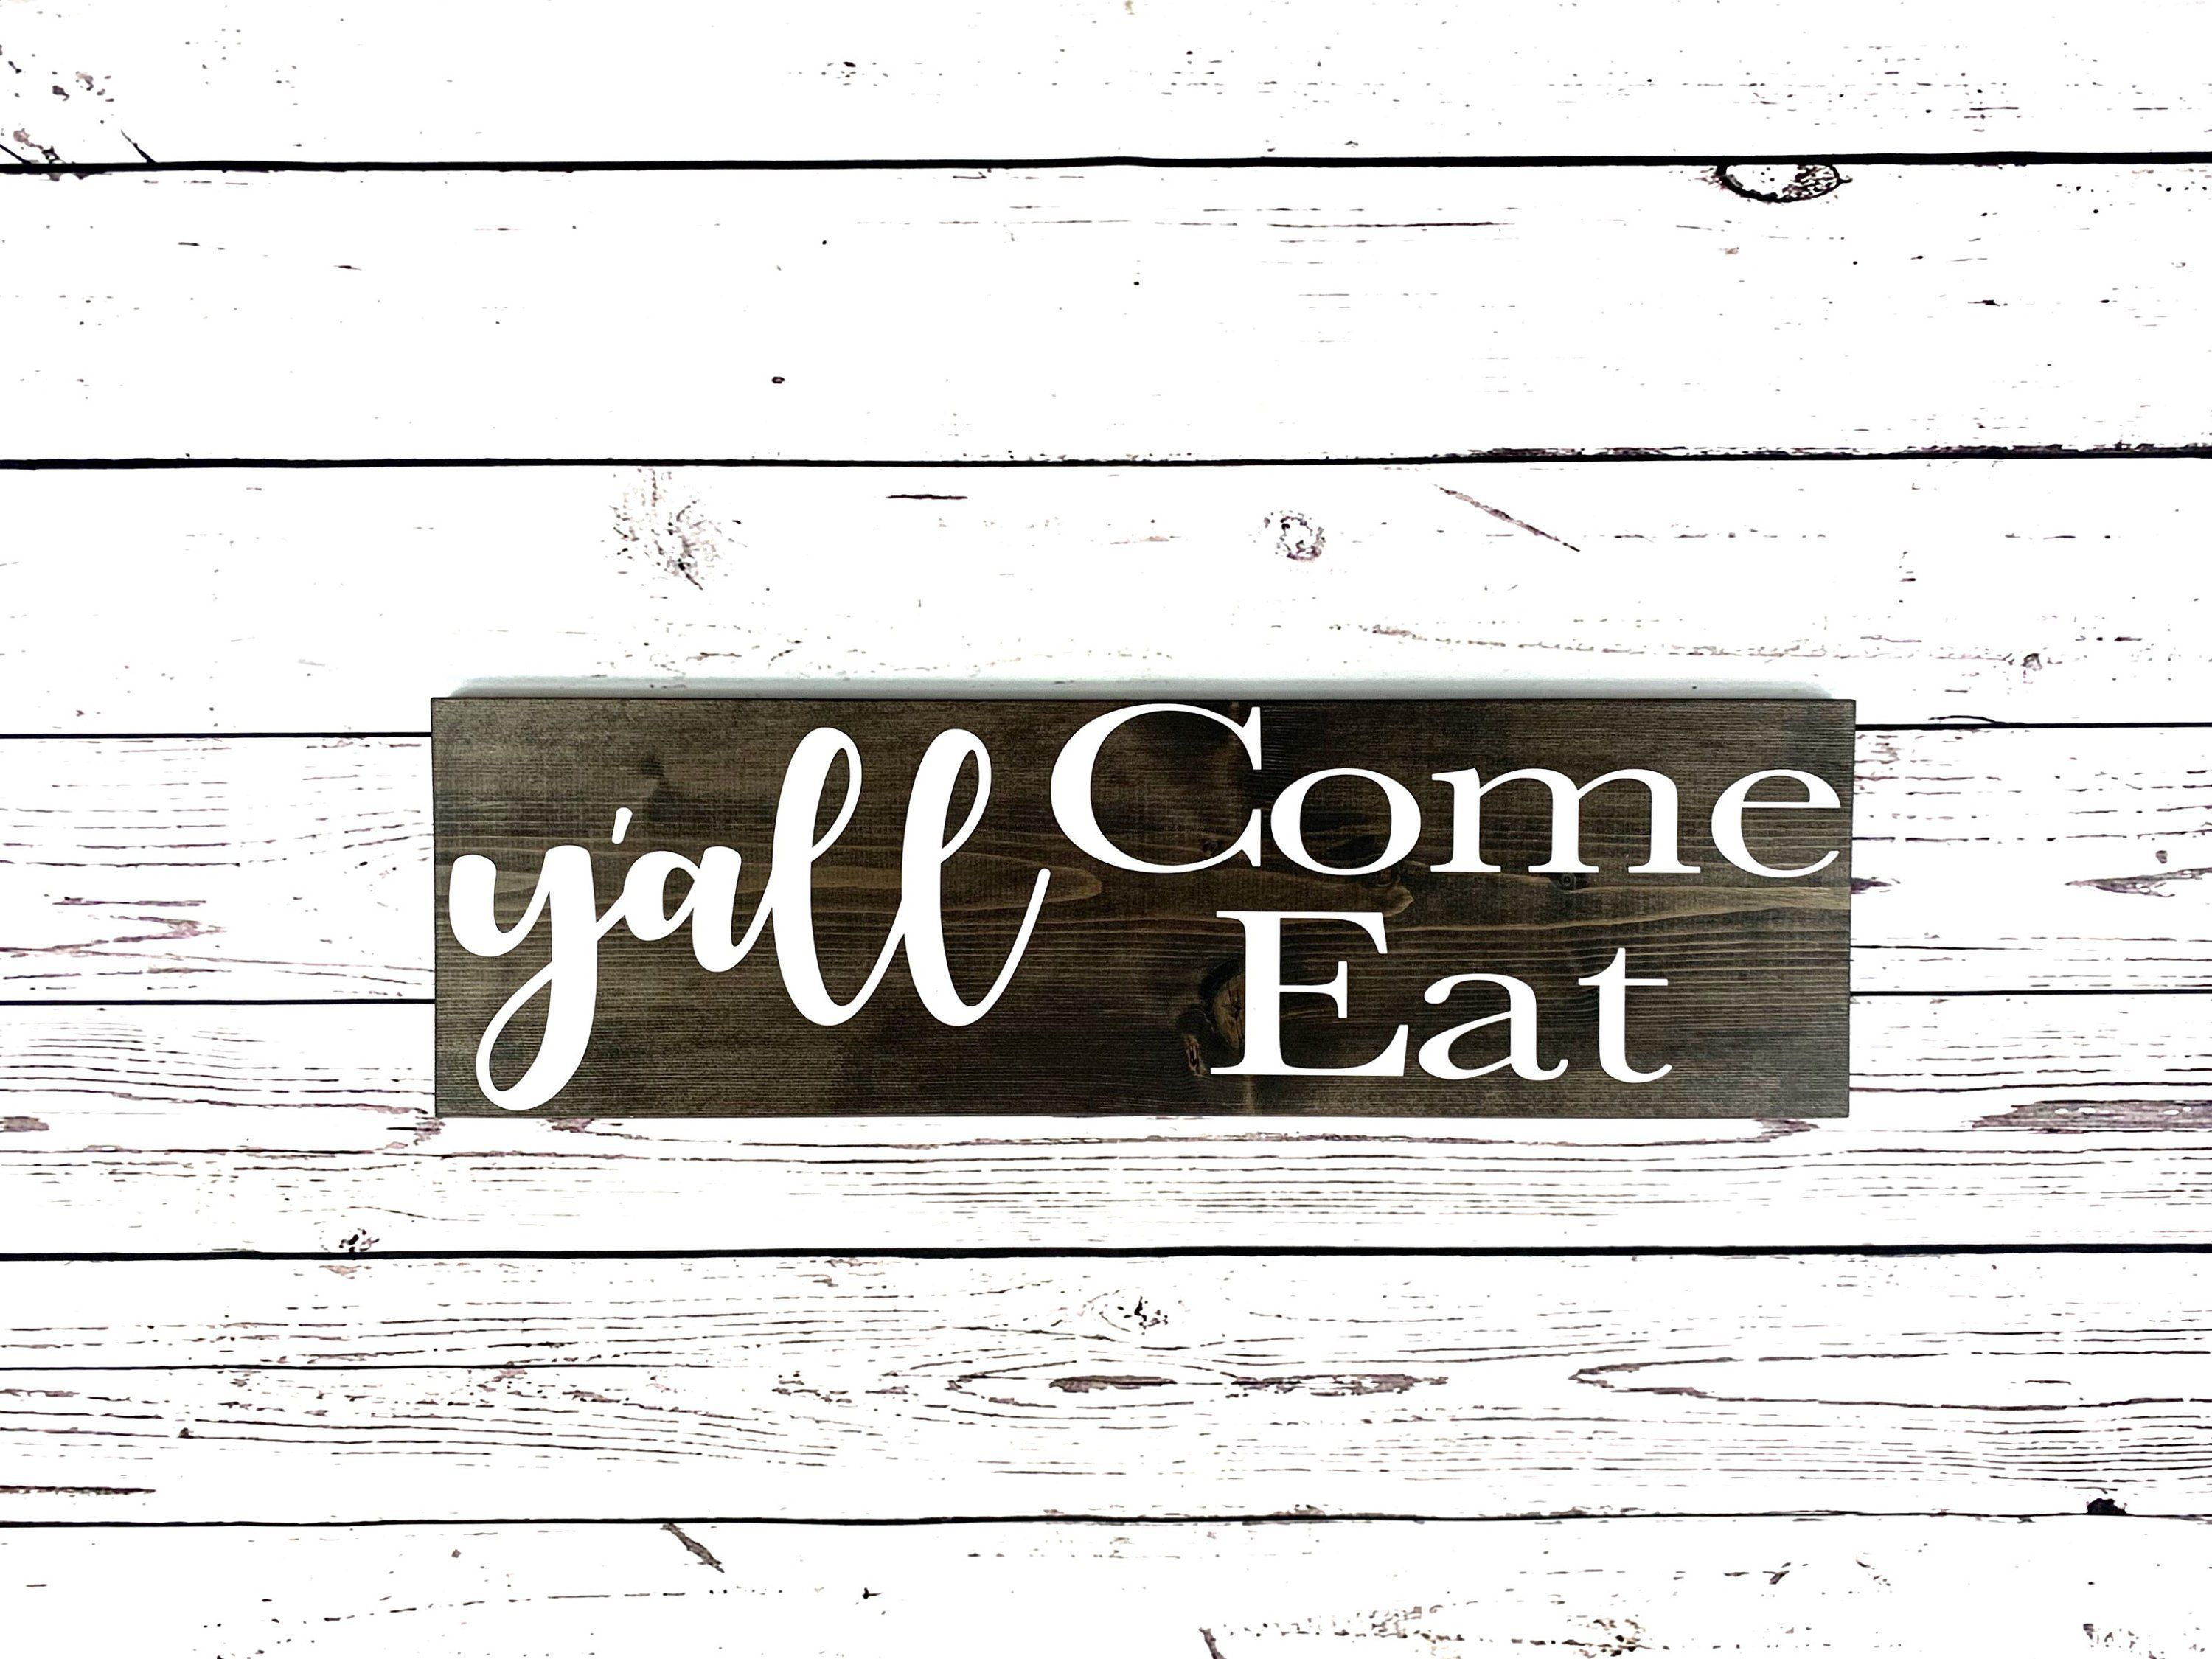 Yall Come Eat Rustic Wall Decor For The Home, Farmhouse Throughout Eat Rustic Farmhouse Wood Wall Decor (Photo 21 of 30)